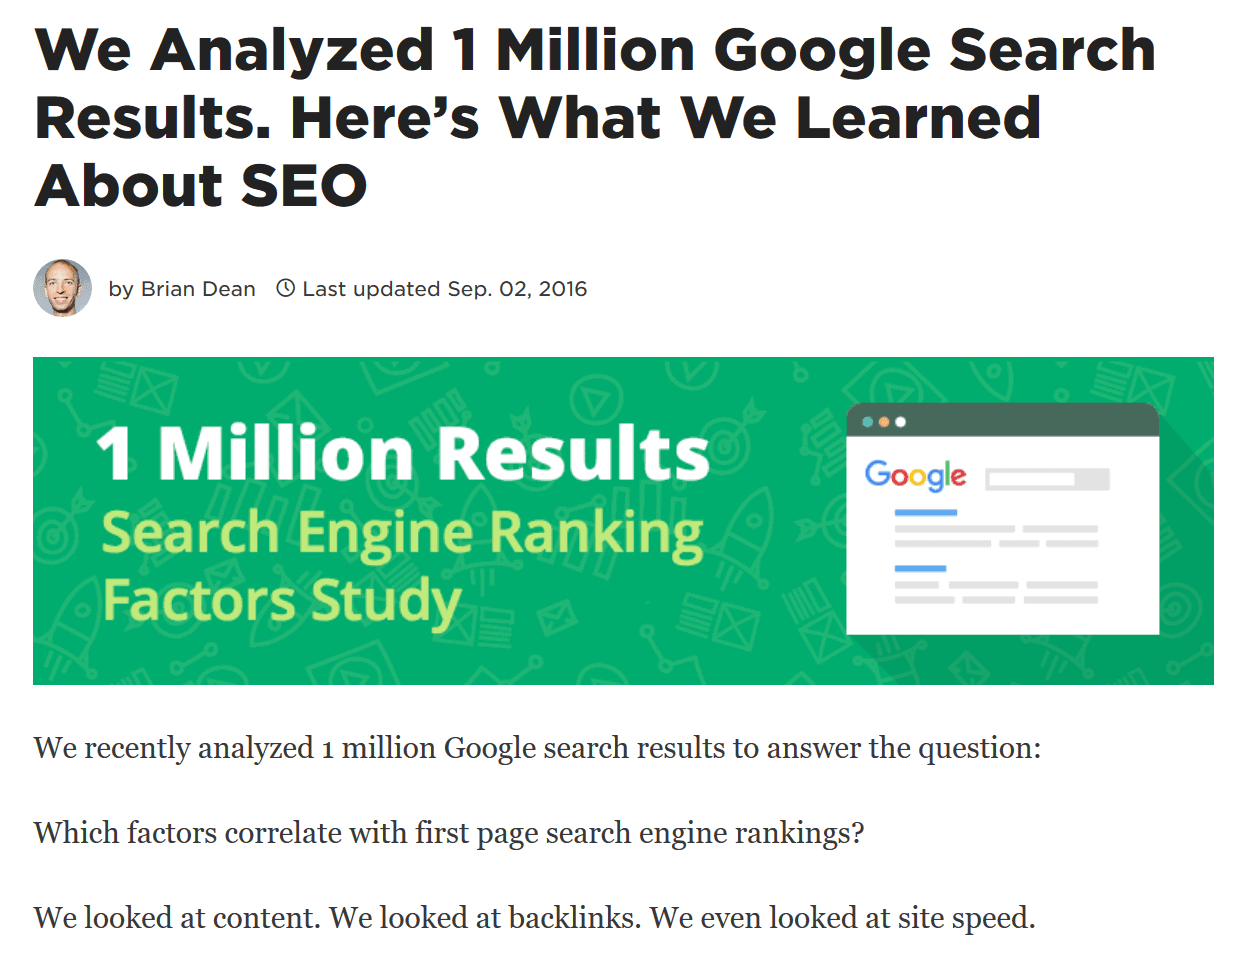 search engine ranking factors study